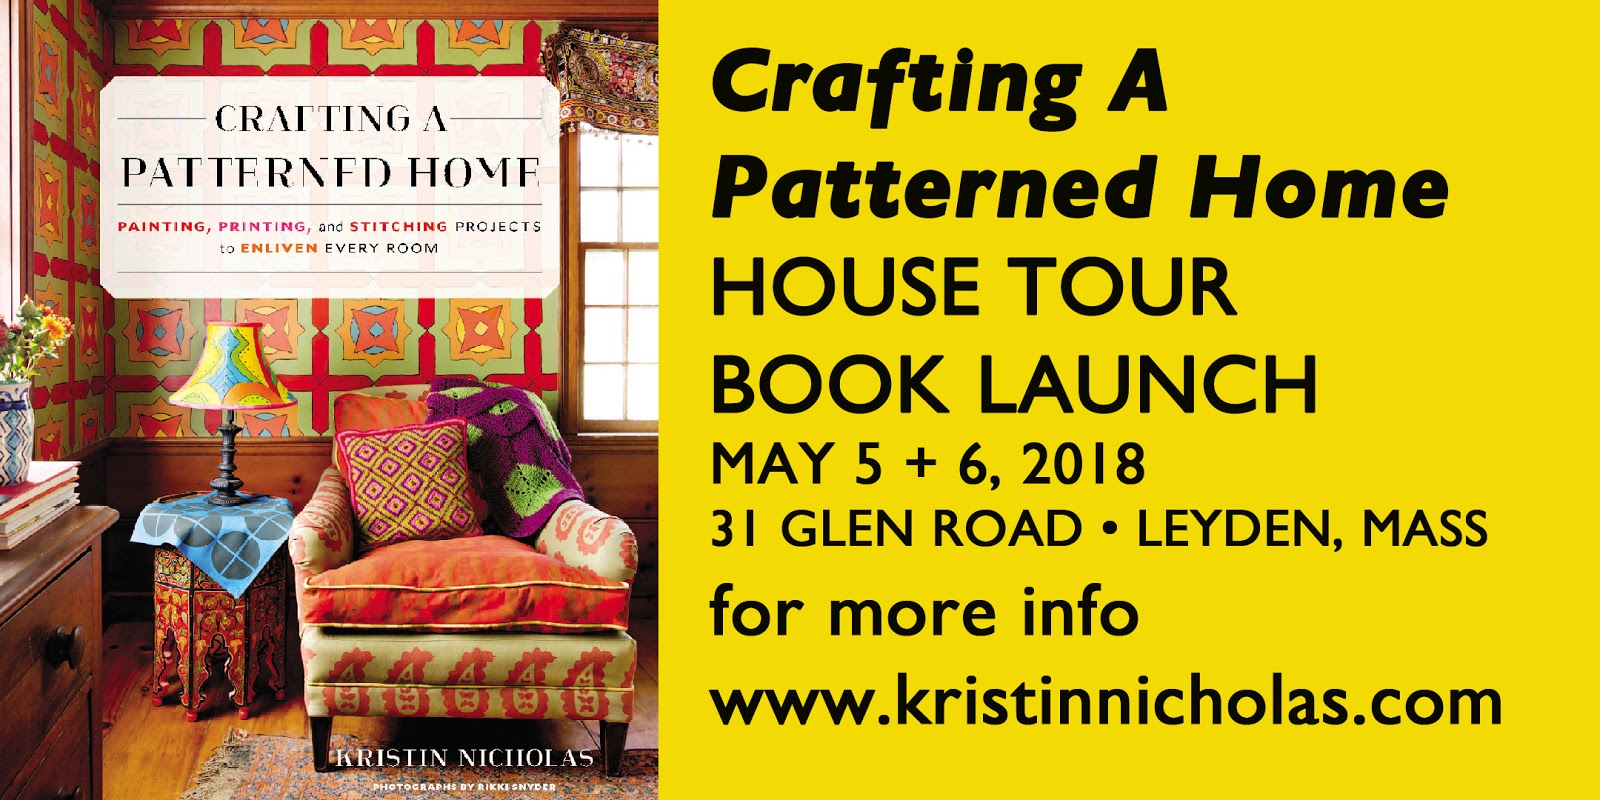 Getting Stitched on the Farm: Big Announcement #1 from Kristin Nicholas